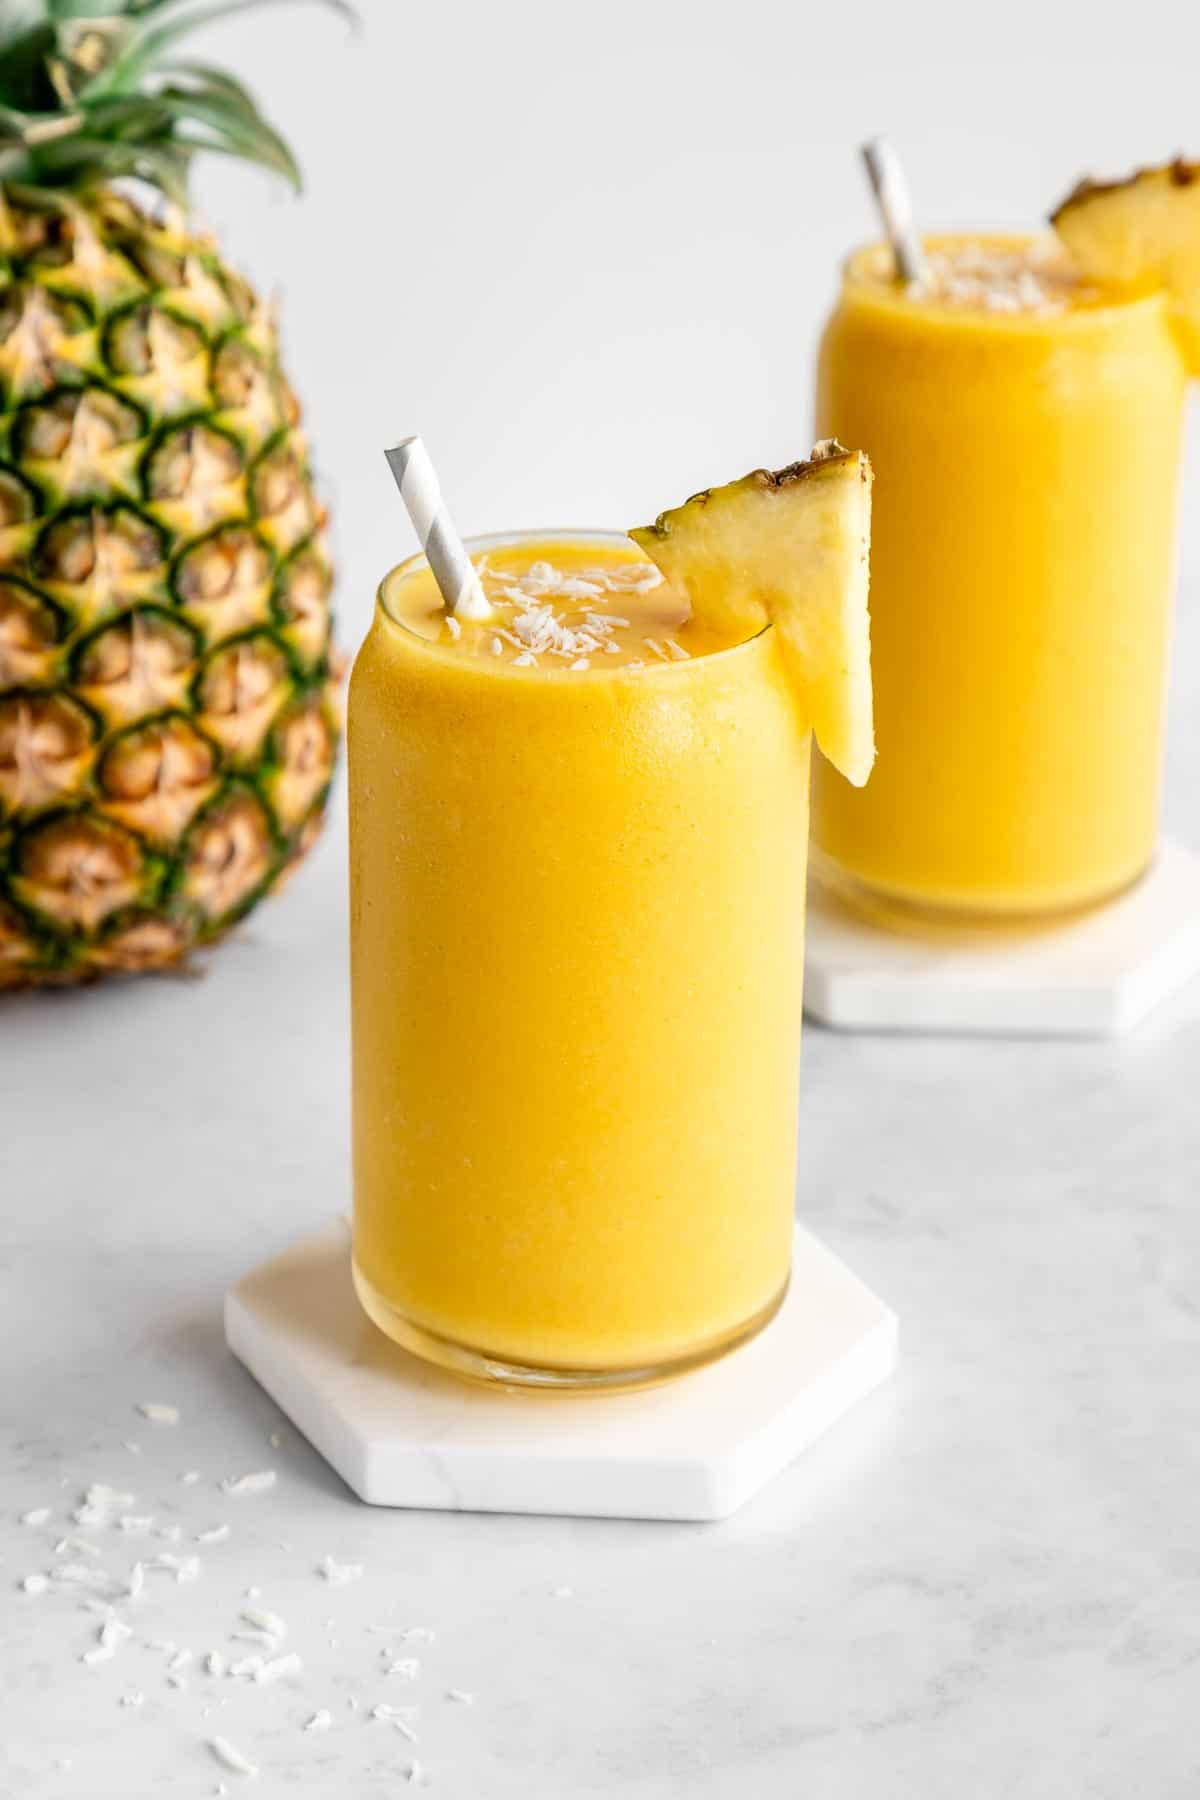 a pineapple coconut smoothie inside a glass